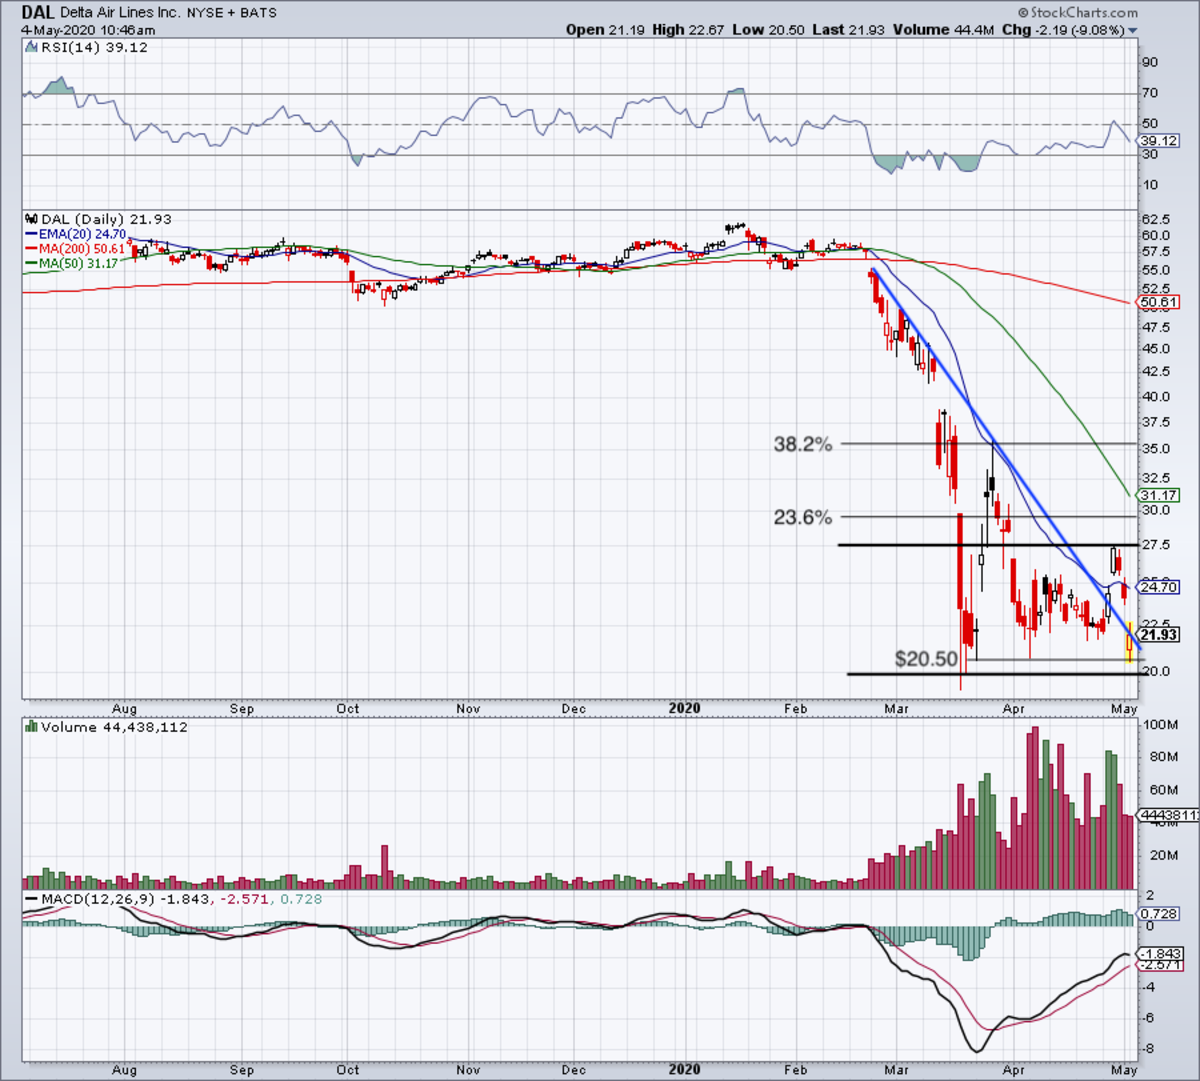 Daily chart of Delta stock.